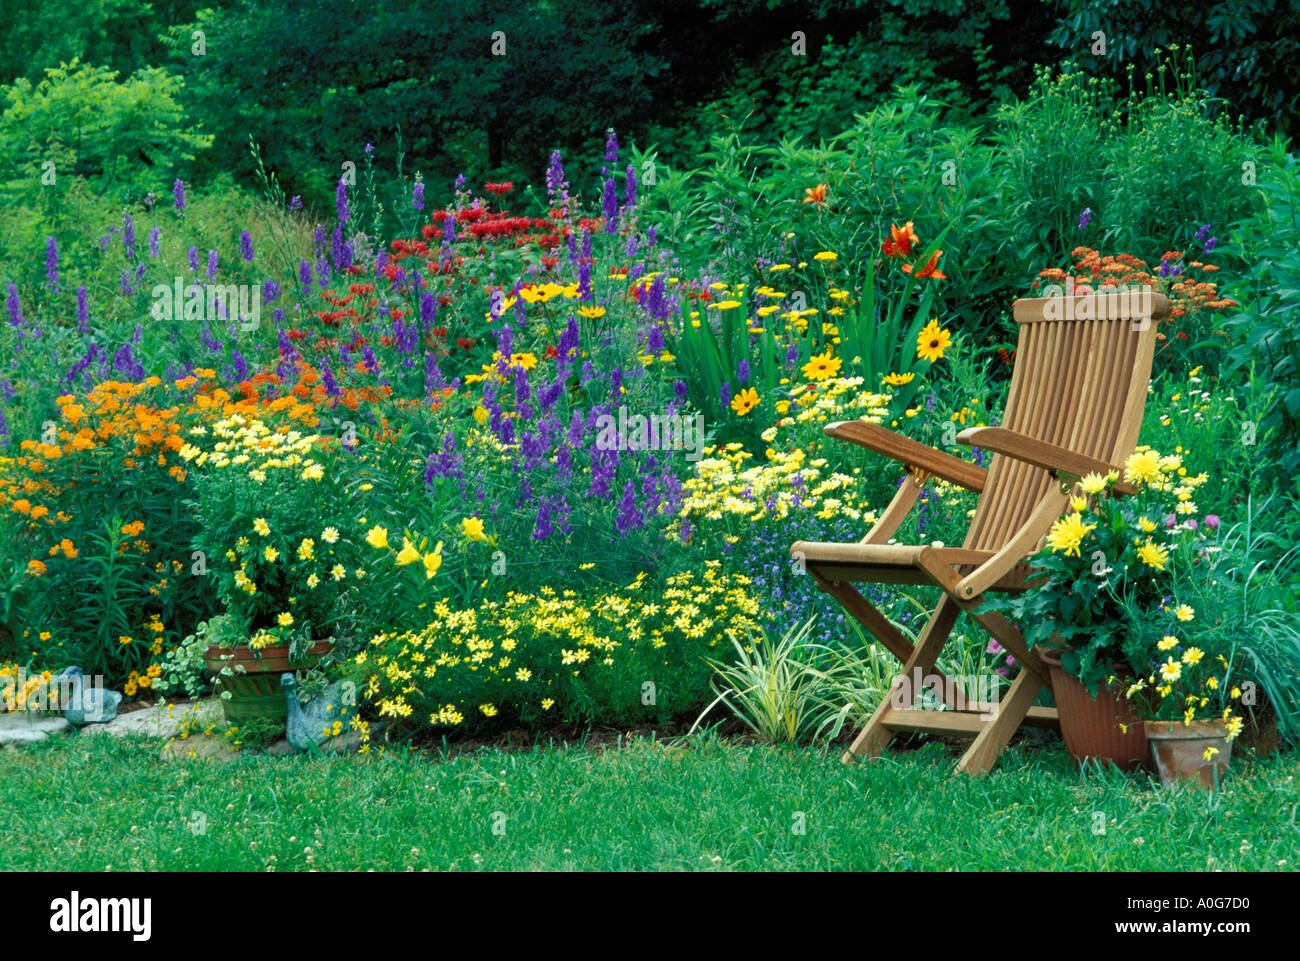 Wooden Chair In Colorful Flower Garden With Annuals And Perennials